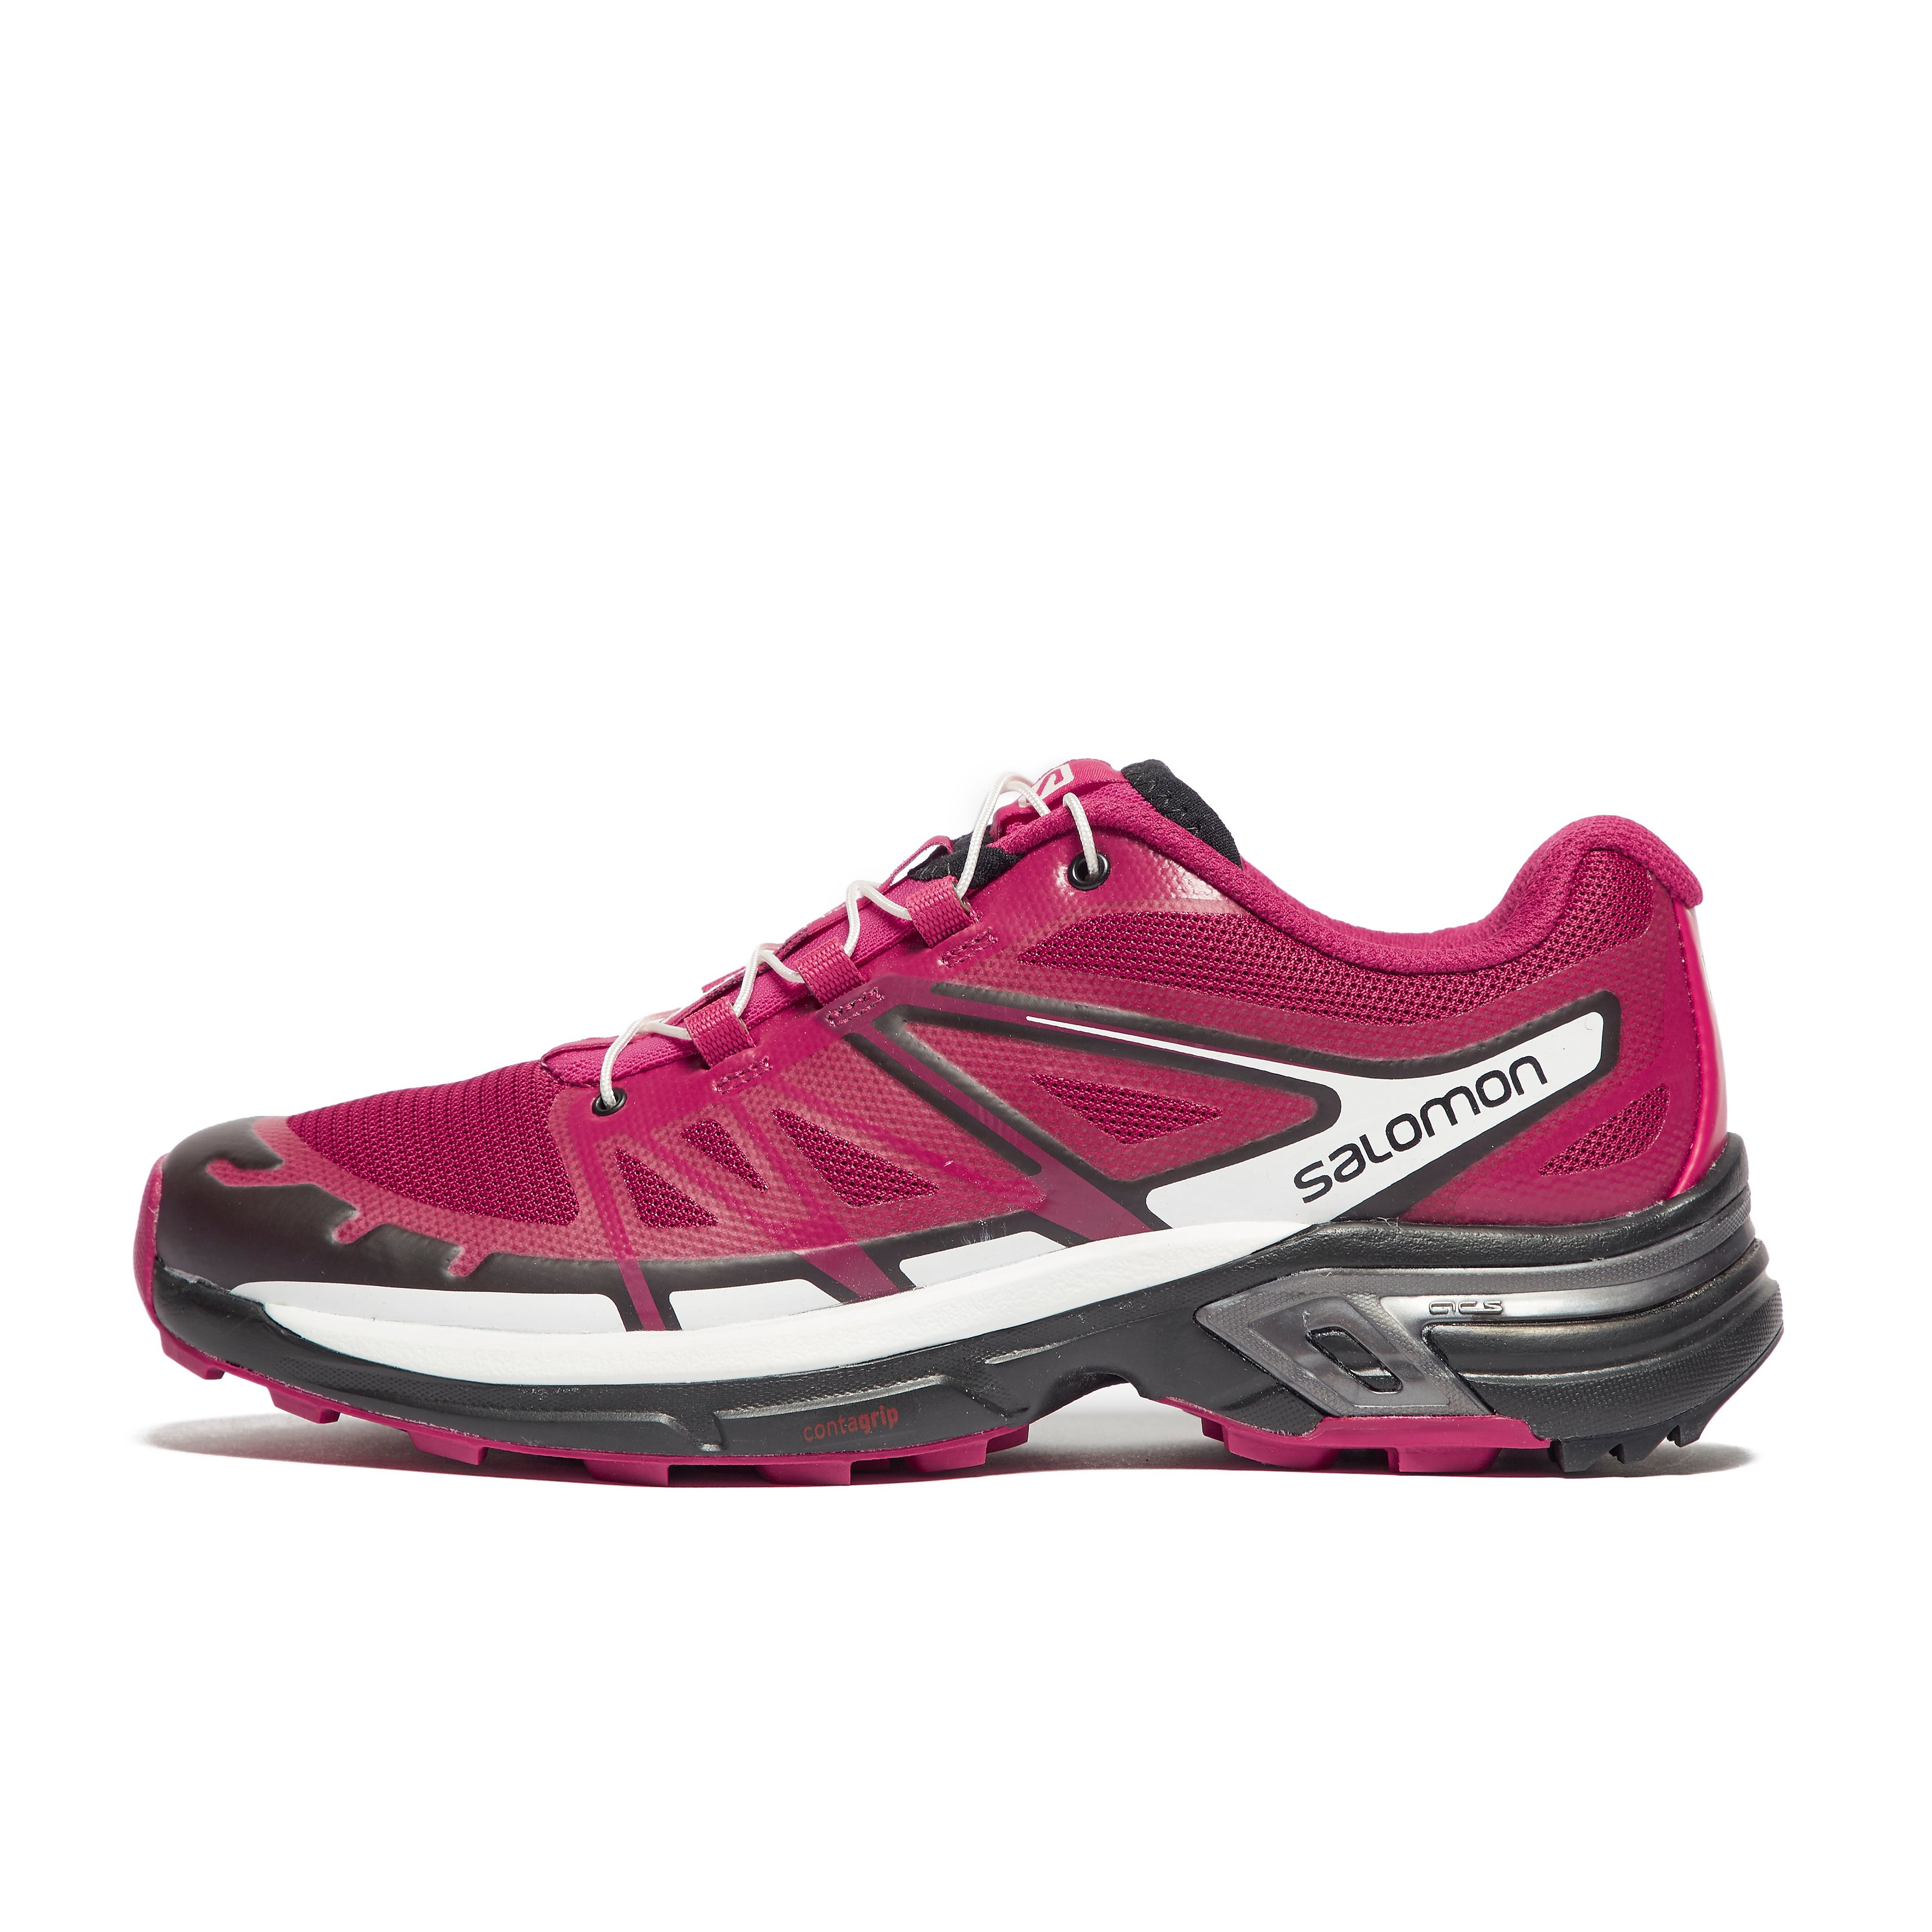 Salomon Wings Pro 2 Women's Trail Running Shoes